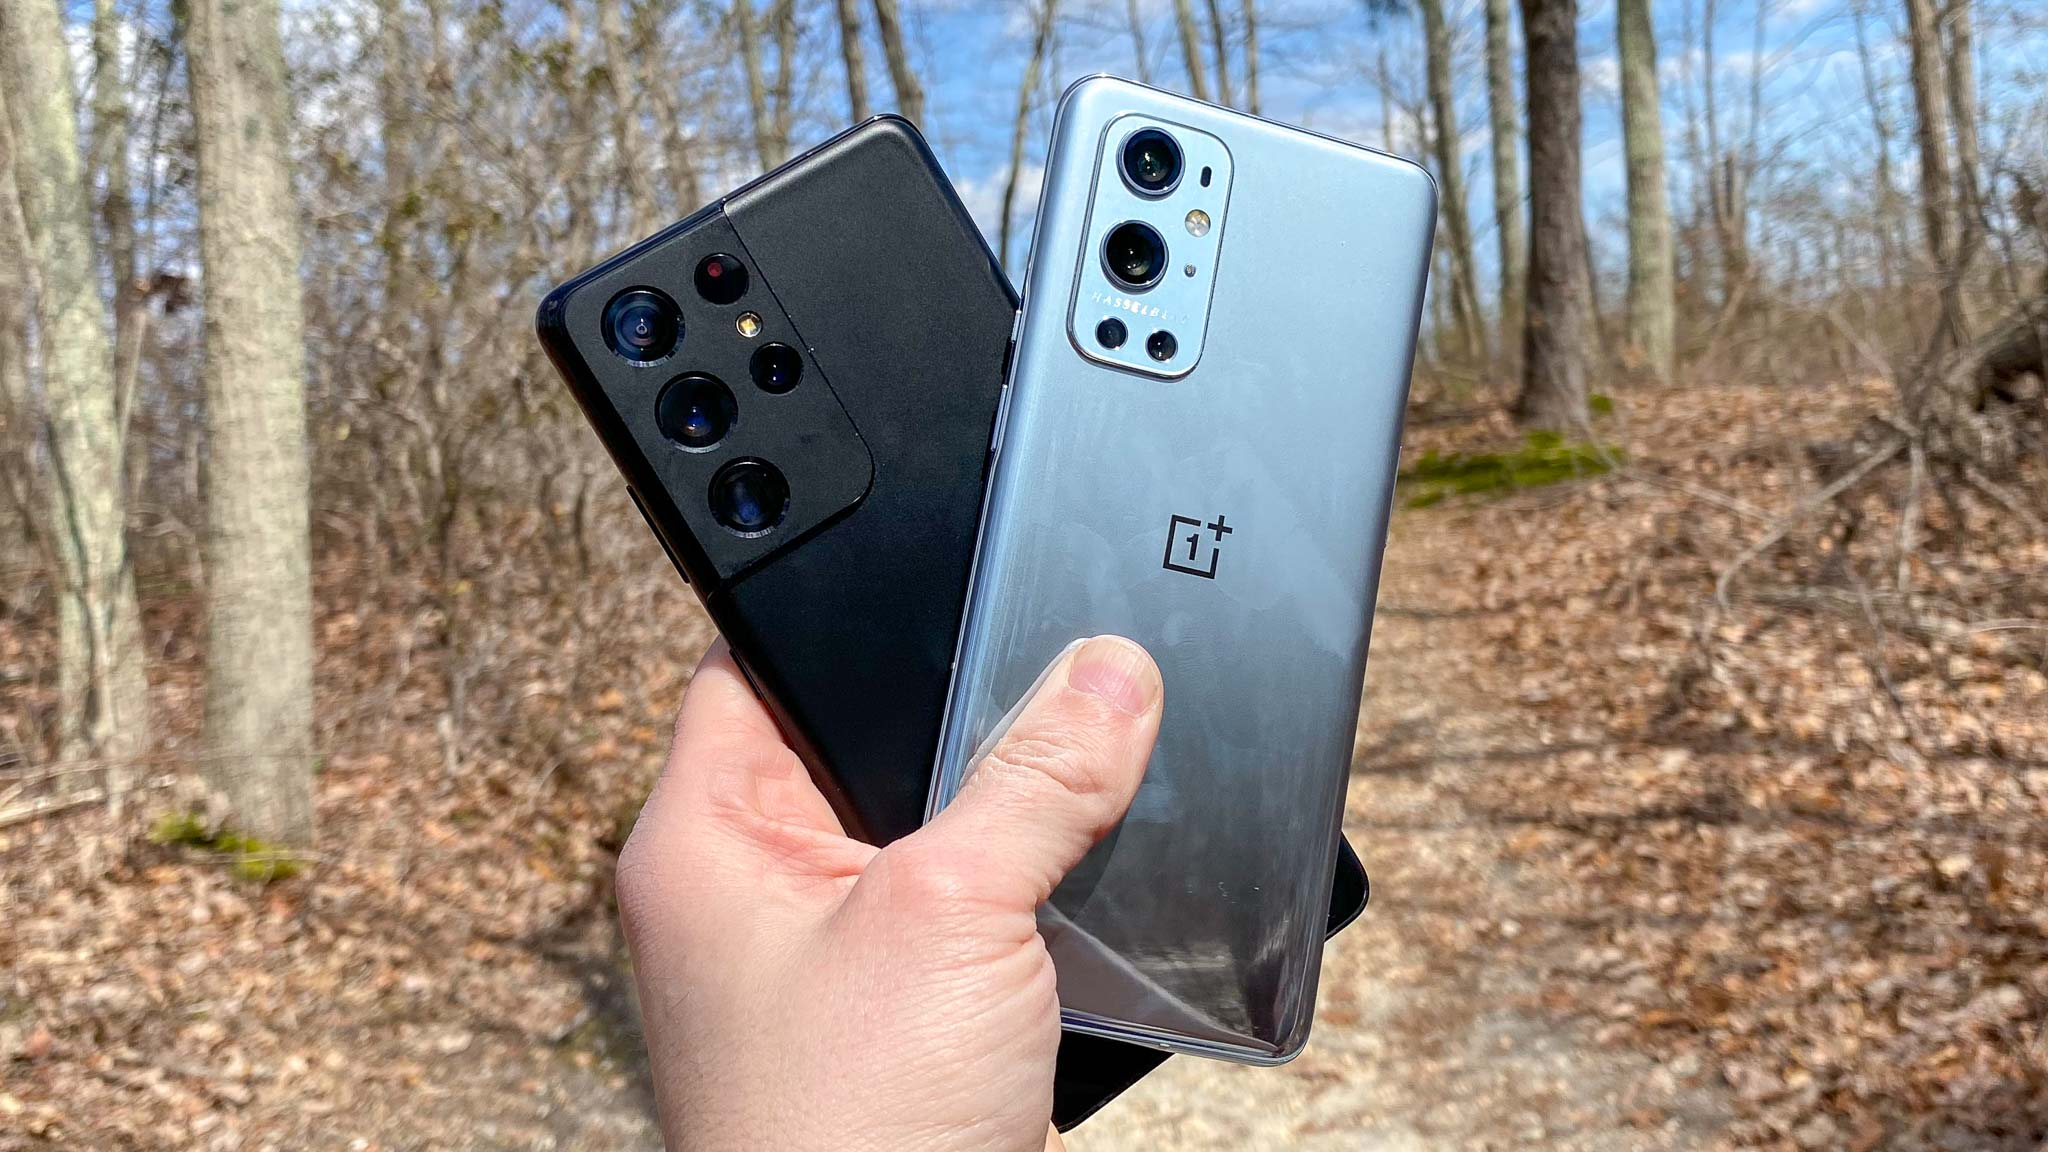 OnePlus 9 Pro vs Samsung Galaxy S21 Ultra: Which Android phone wins?